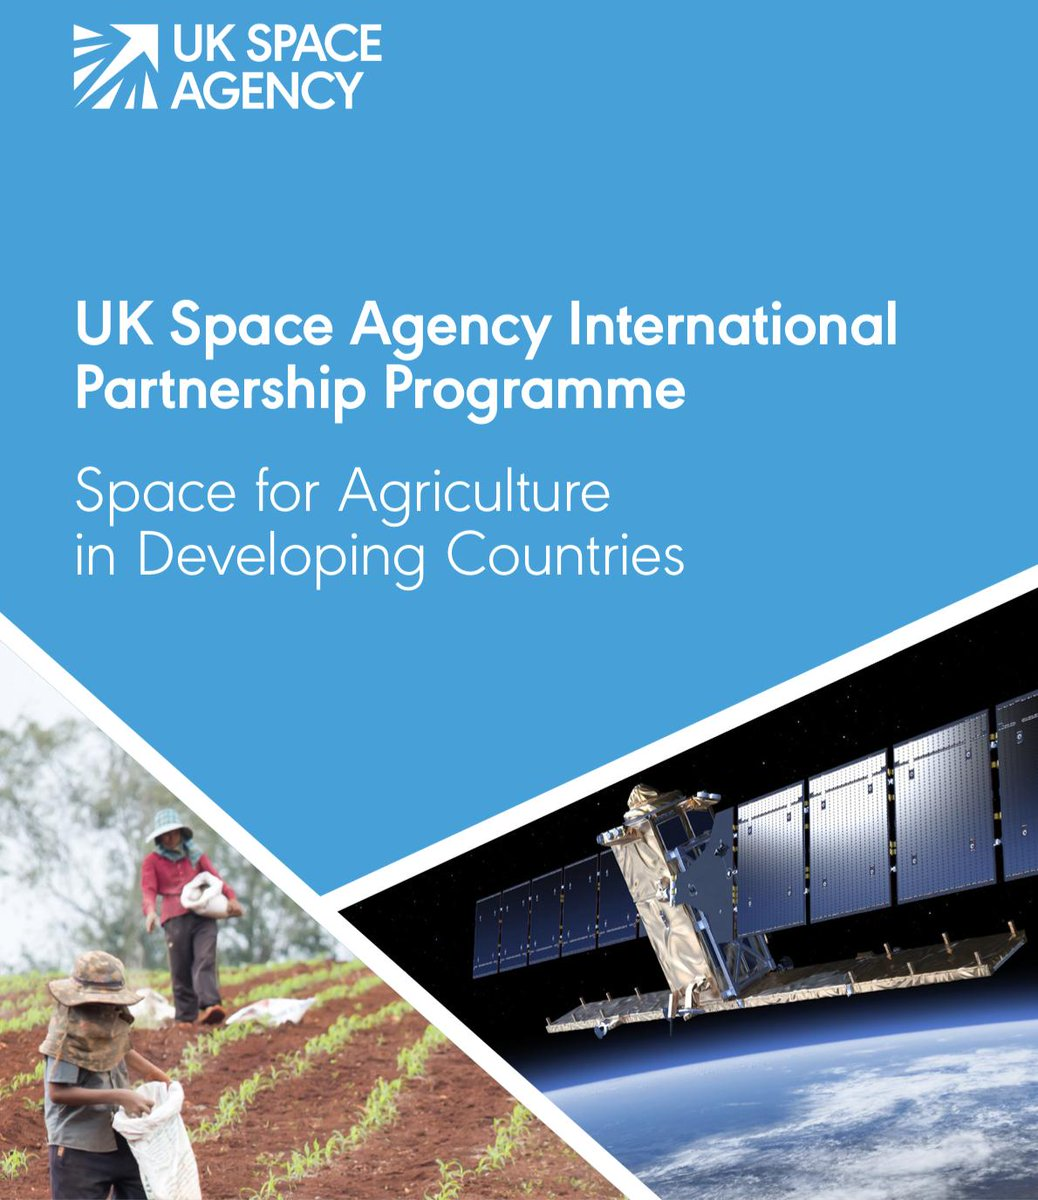 inter agency joint programme implemented - HD1038×1200